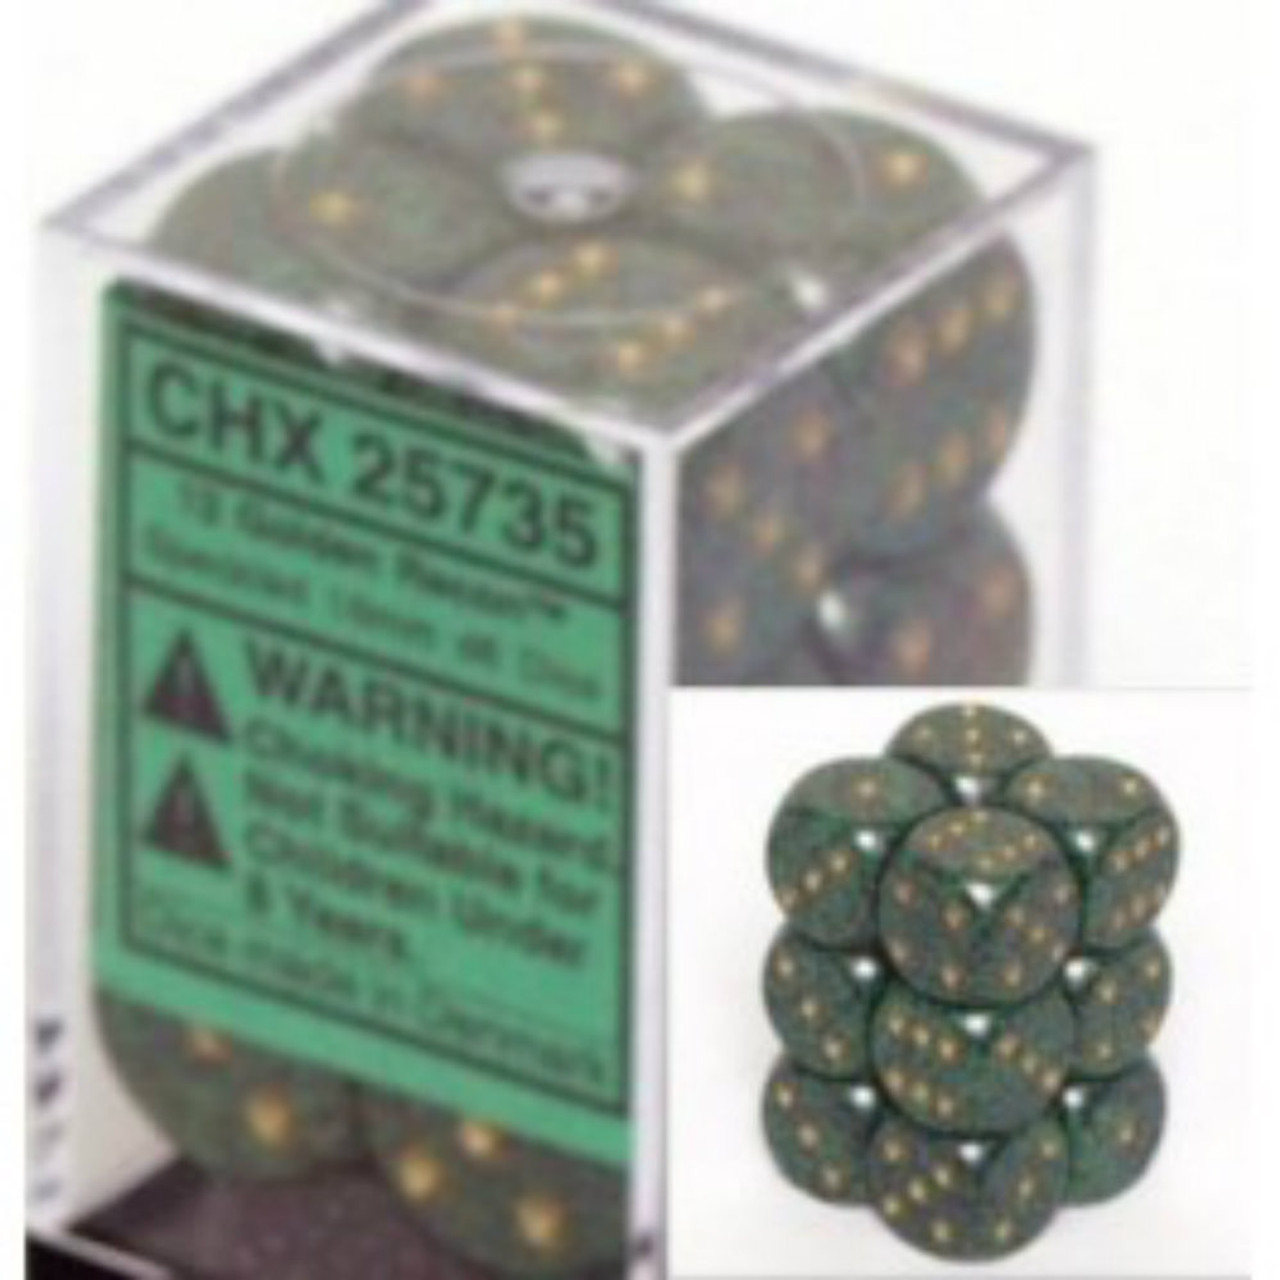 Chessex Speckled Golden Recon Set of 12 d6 16mm Dice (CHX25735)